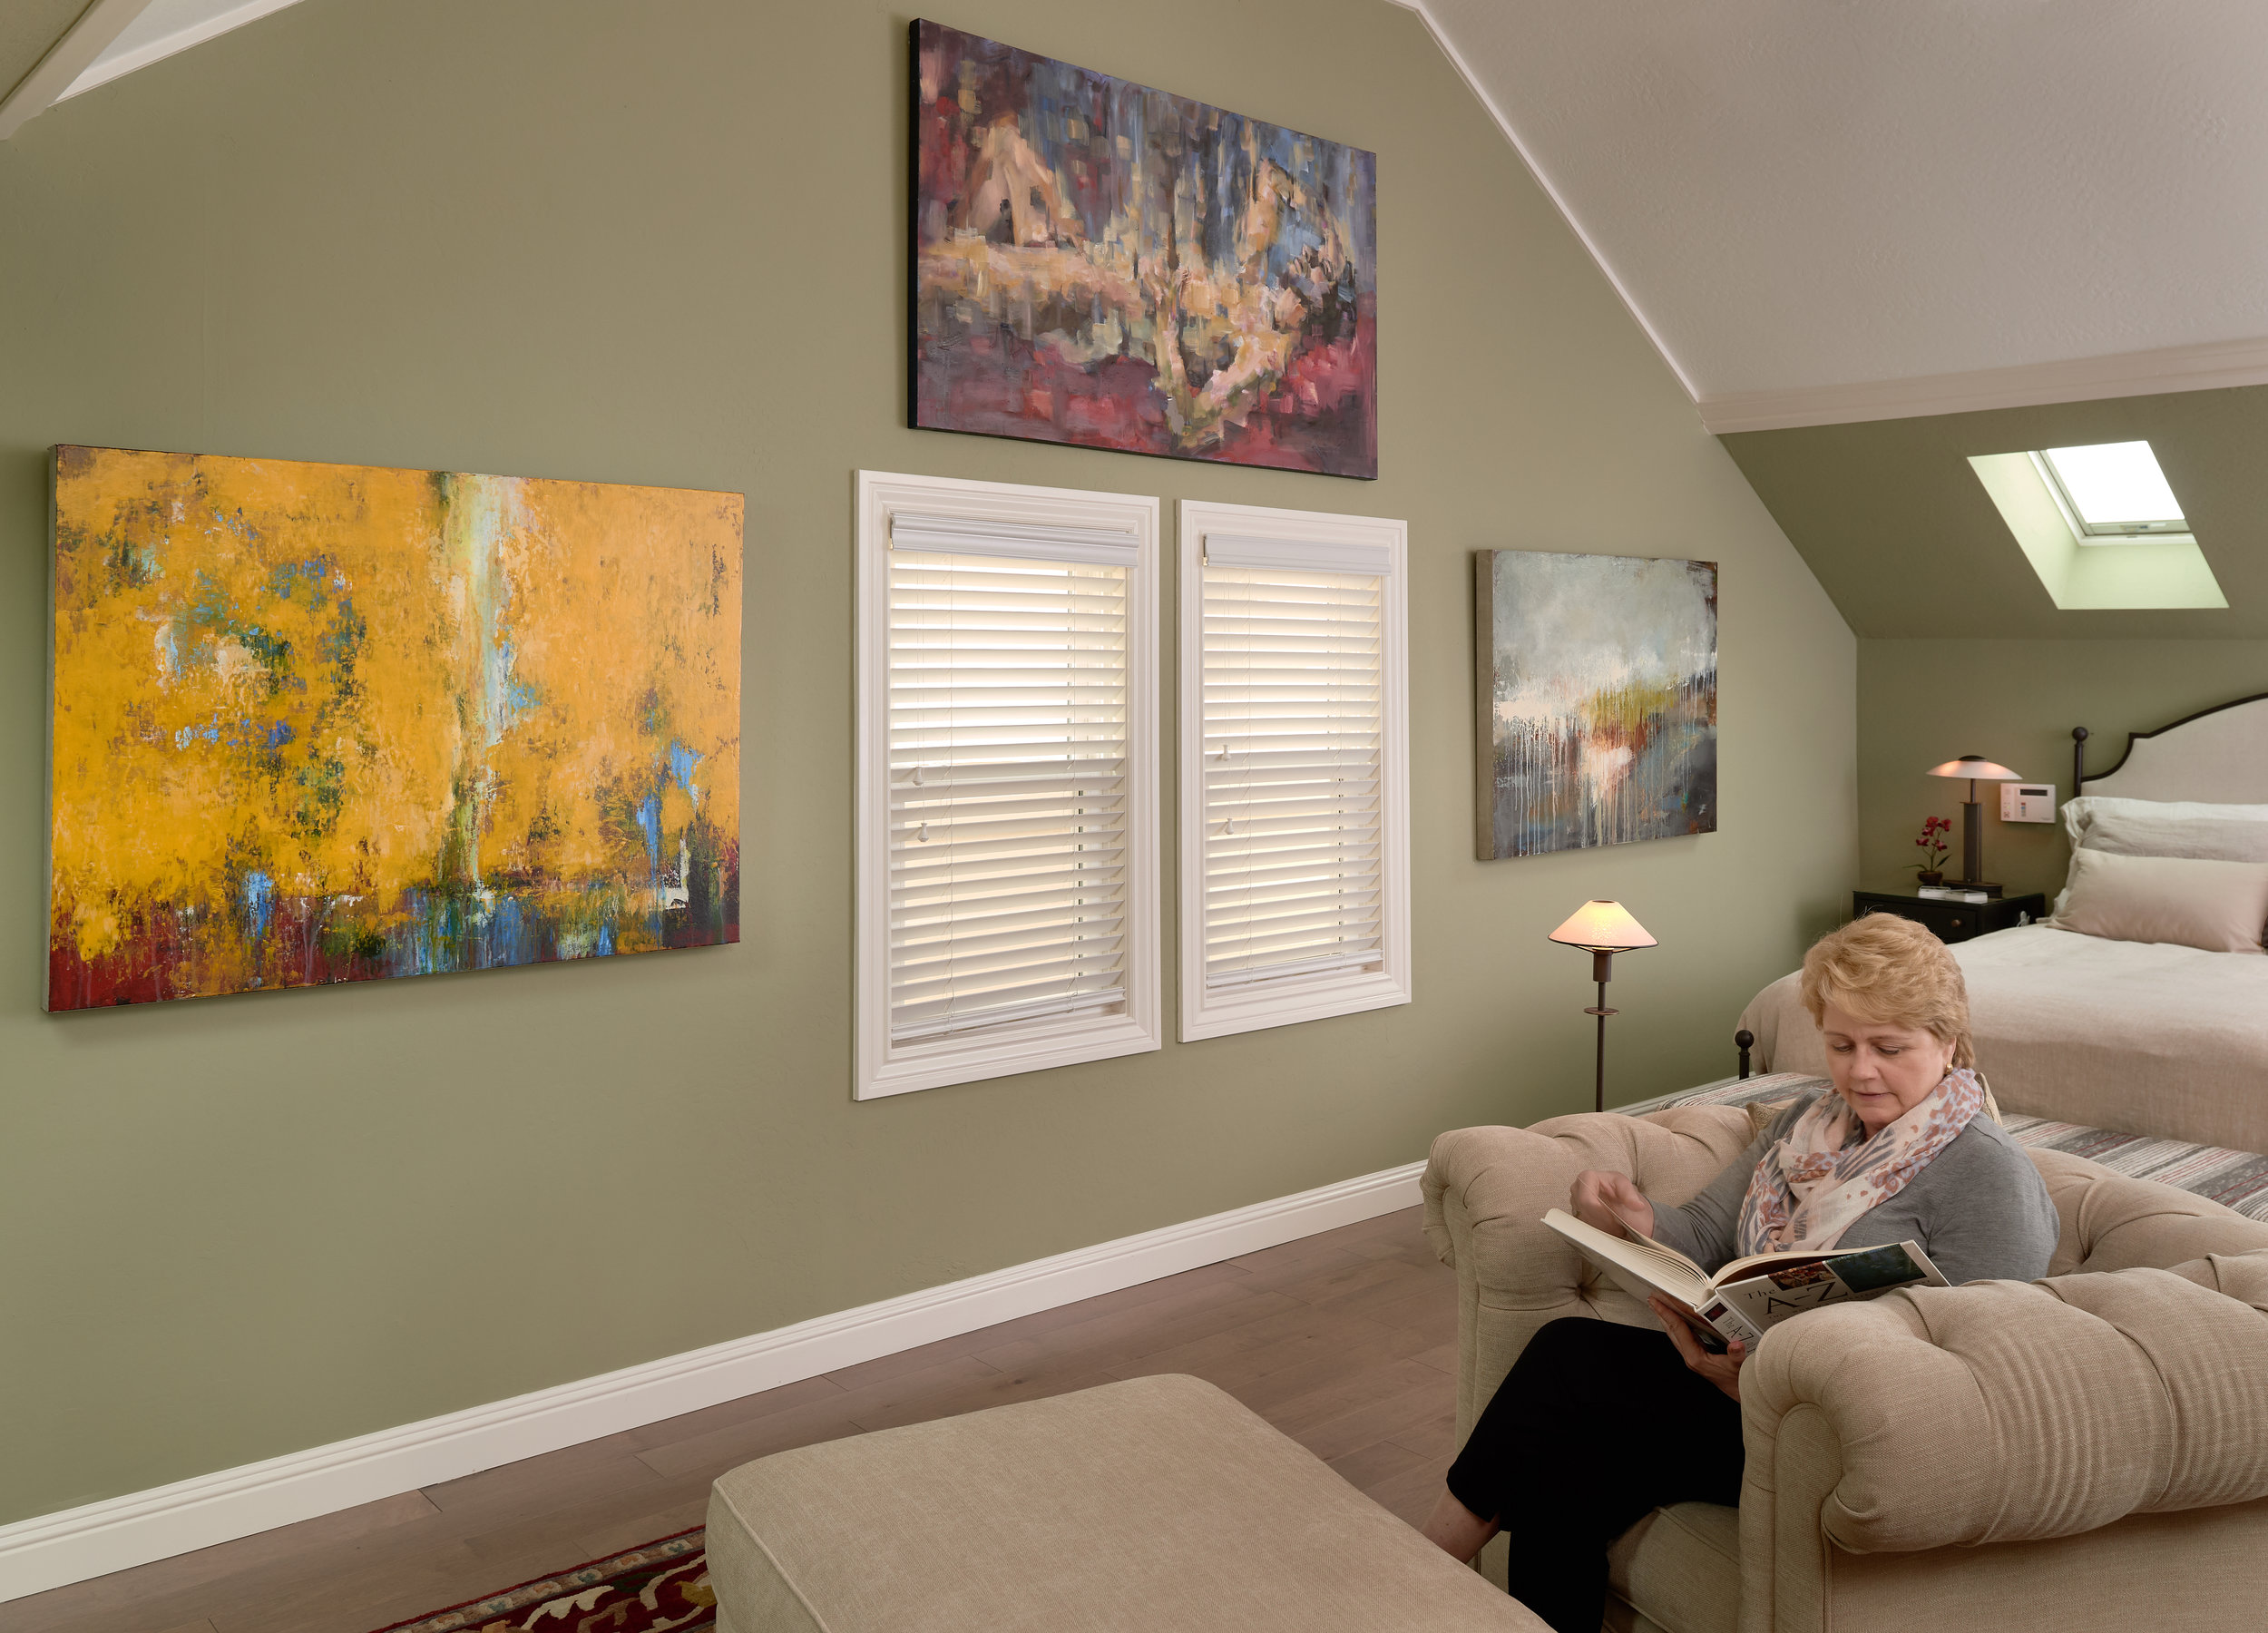 C.H. sitting by her UGallery paintings  Horizon  by  Faith Taylor  (left), Repose  by  Michele Giulvezan-Tanner  (center),  Breakthrough  by  Faith Taylor  (right)